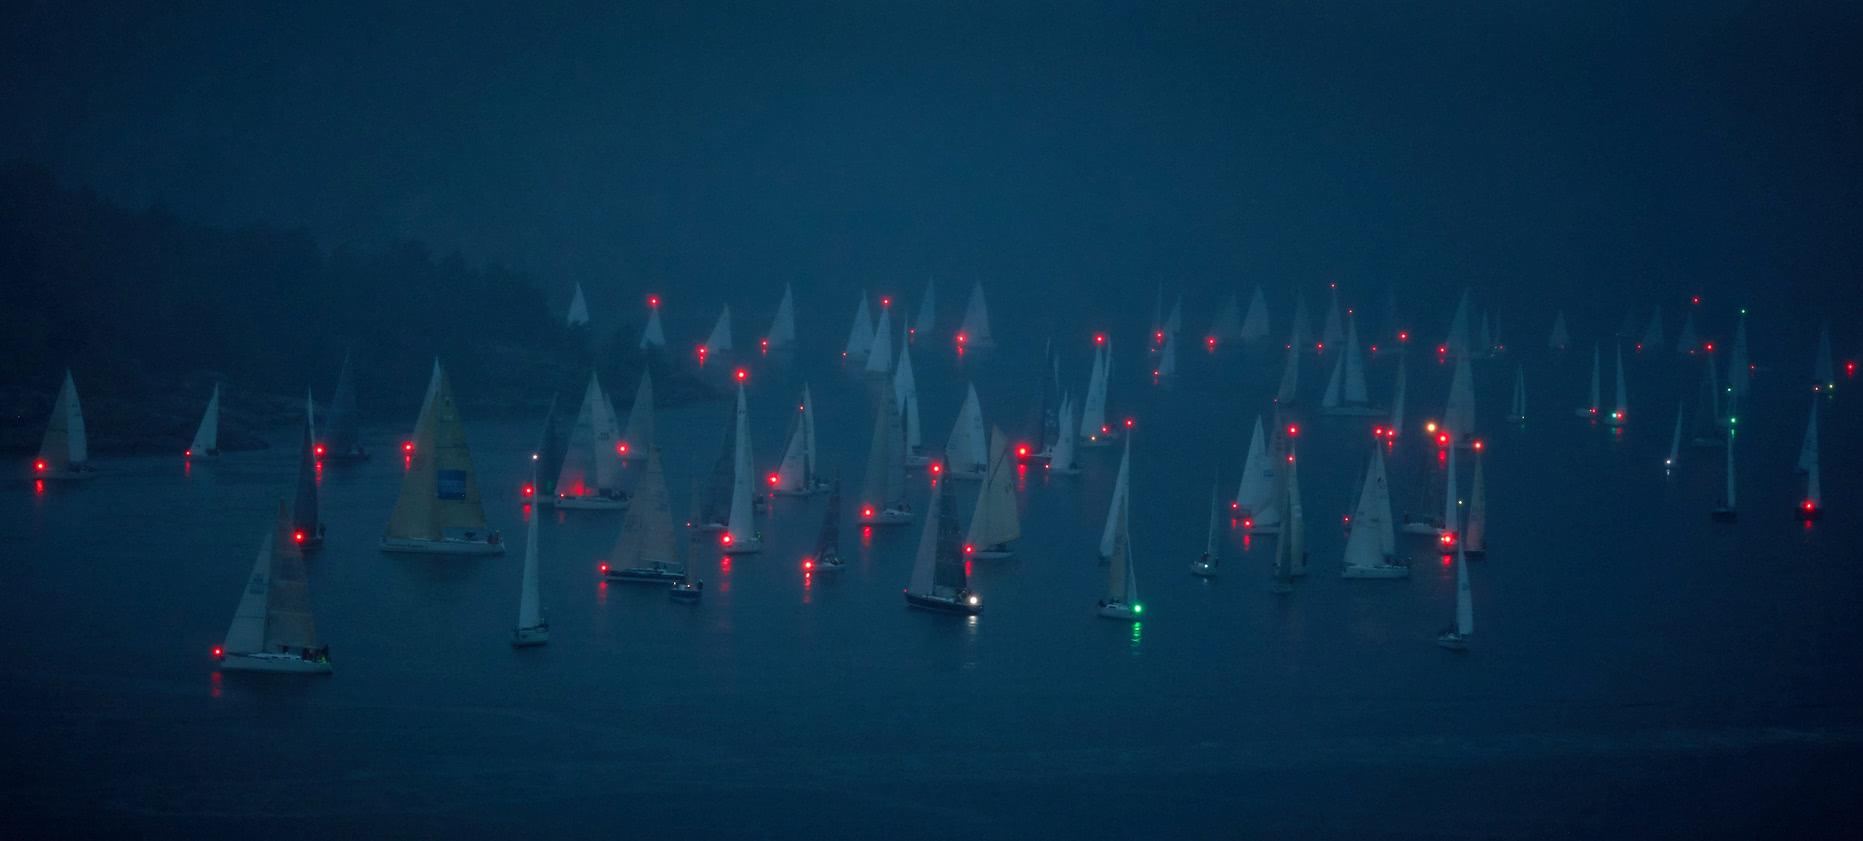 Displaying Lights On Sailing Yachts and Motor Boats